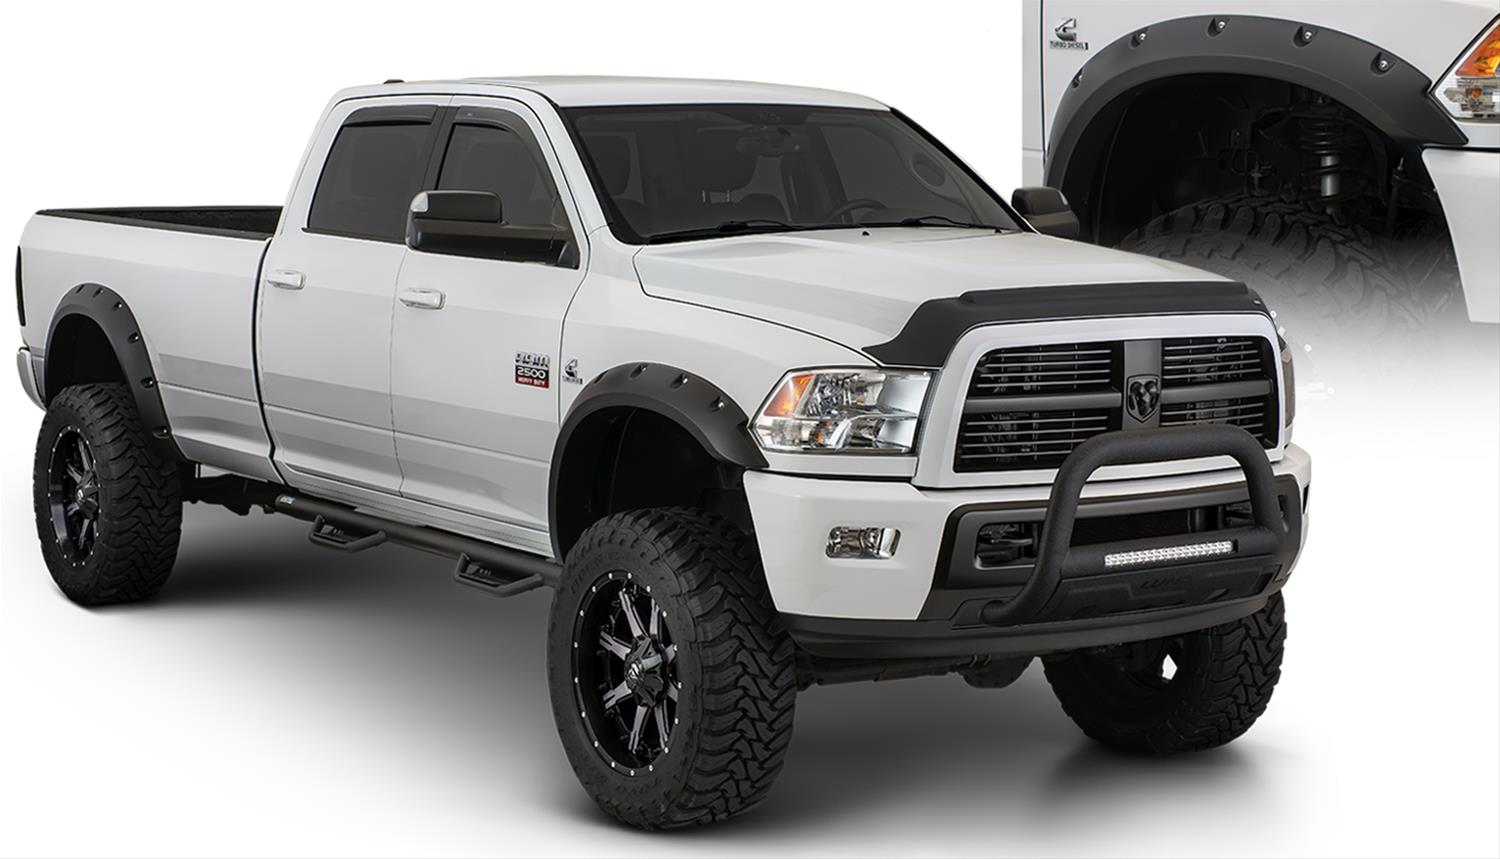 Running Boards For Dodge Ram 2500 >> Bushwacker Max Coverage Pocket Style Fender Flares 50921-02 - Free Shipping on Orders Over $99 ...